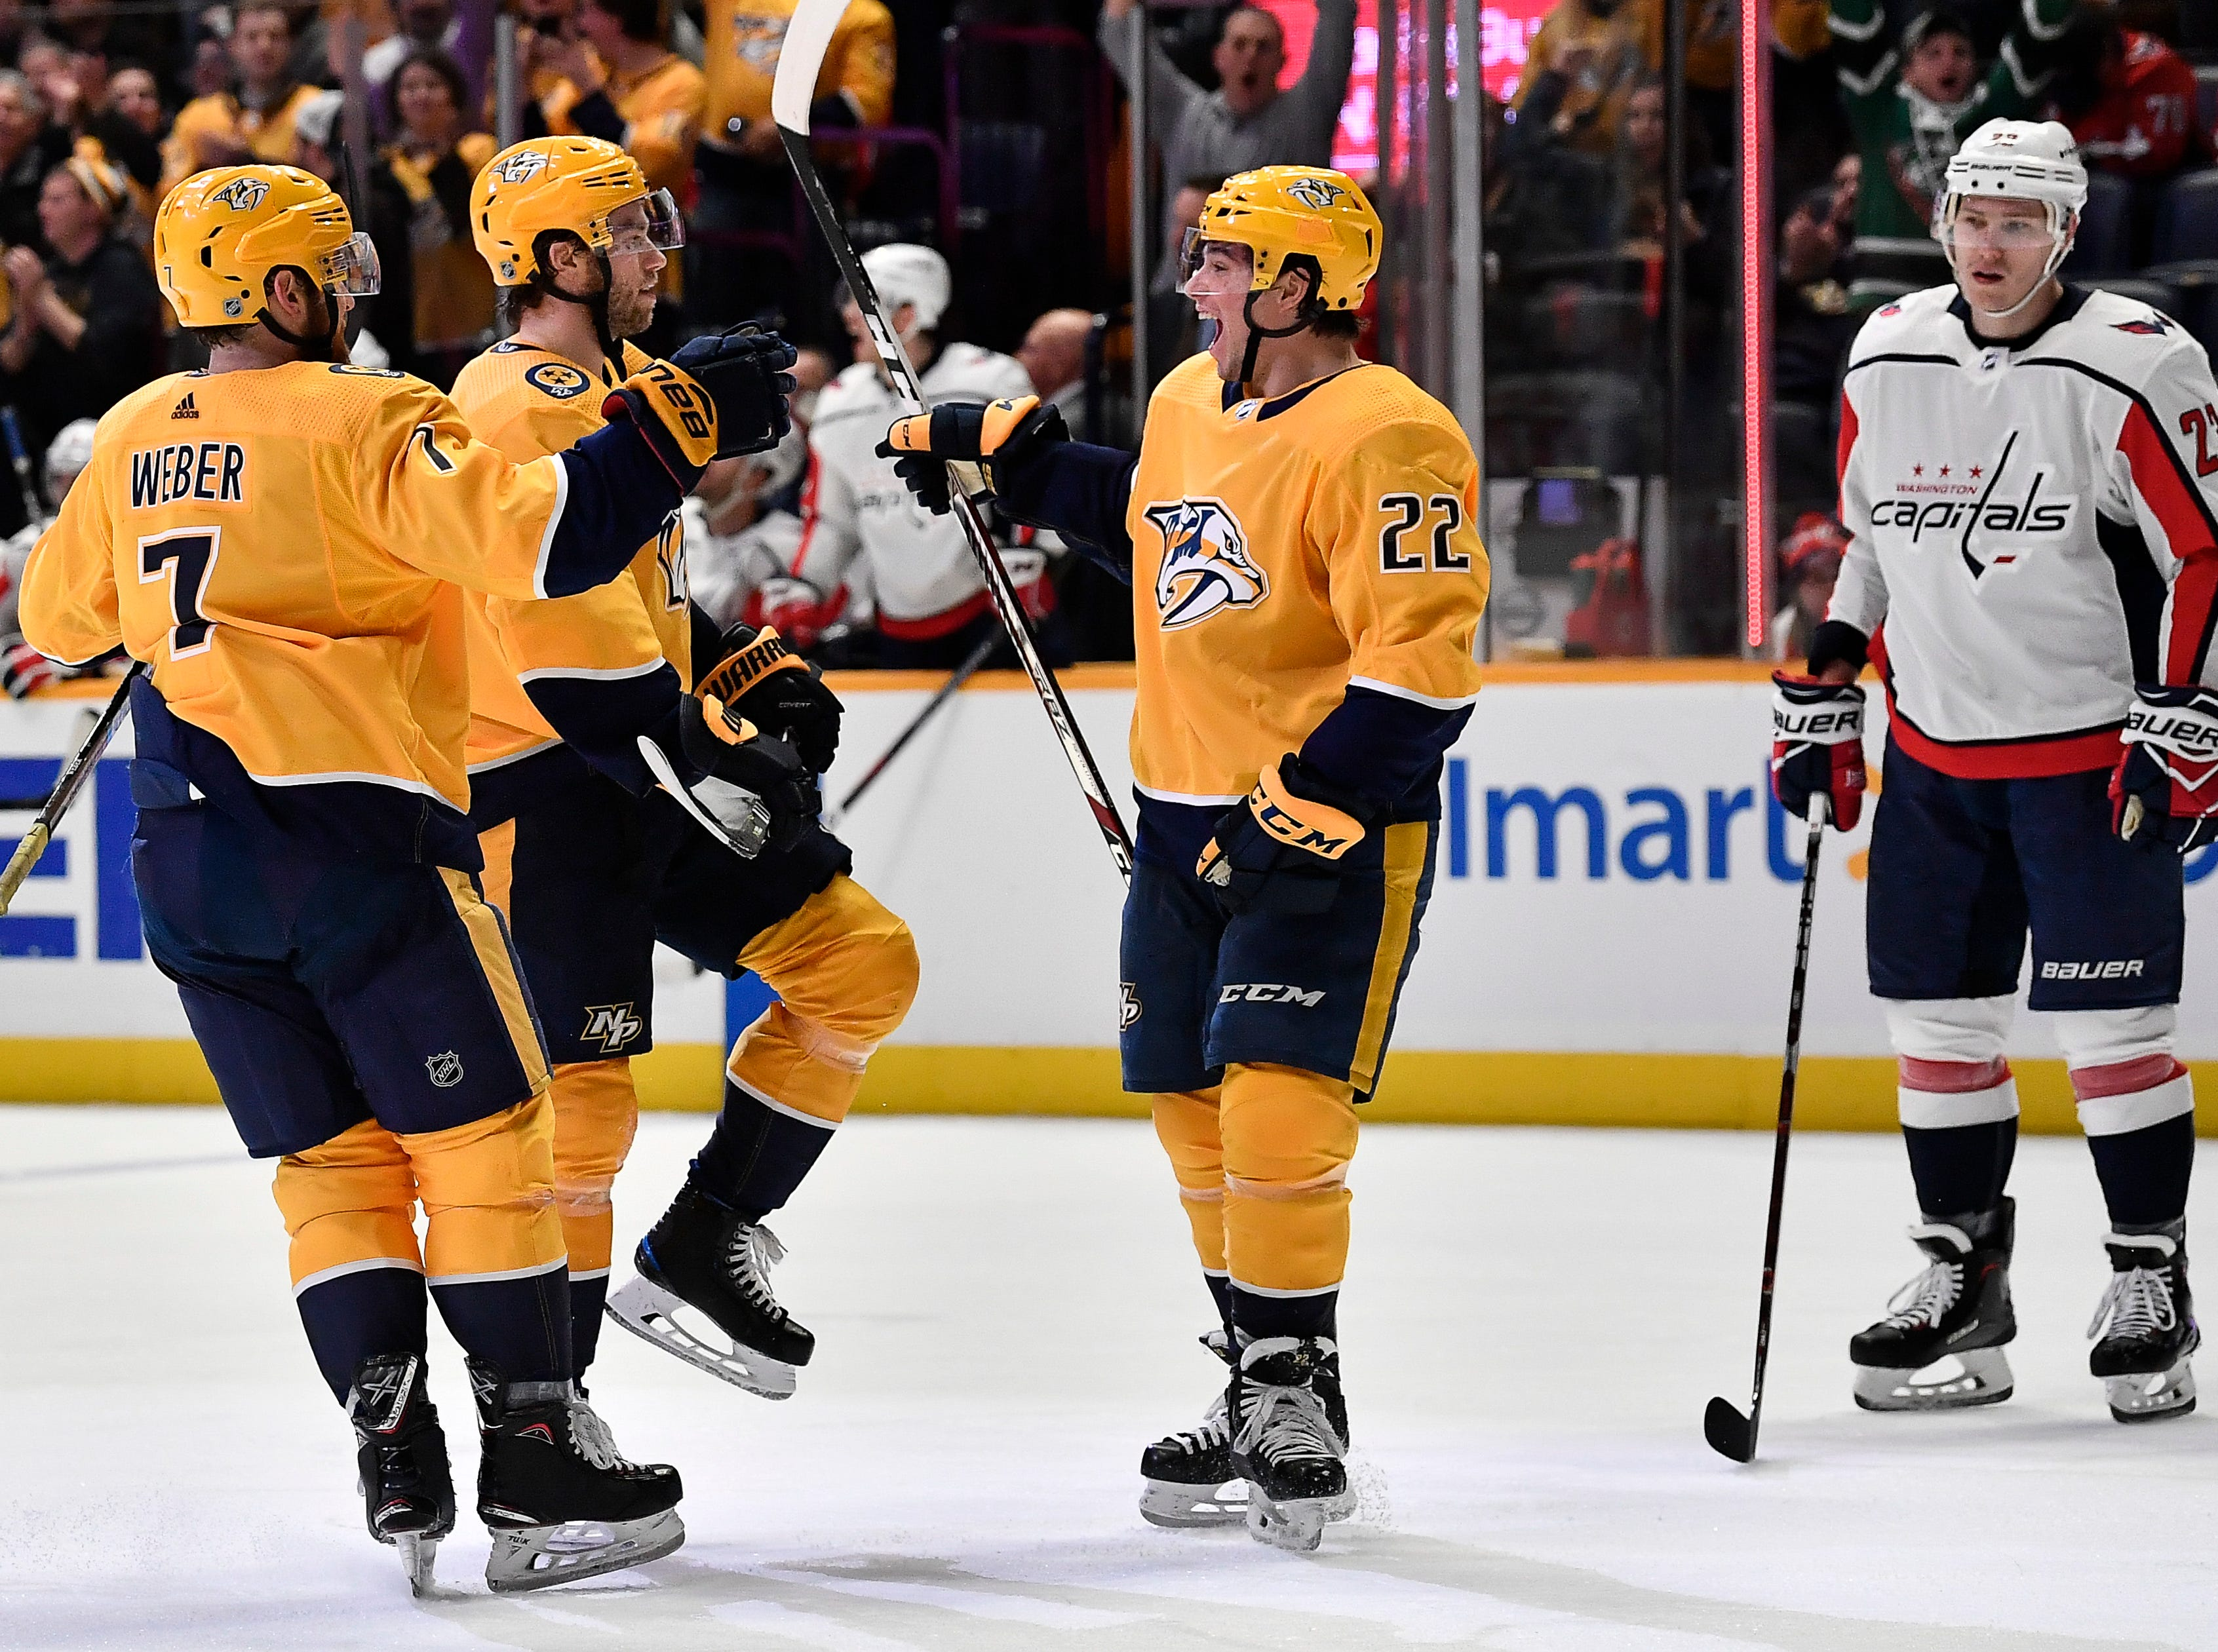 Predators center Calle Jarnkrok (19) celebrates his goal against the Capitals with defenseman Yannick Weber (7) and left wing Kevin Fiala (22) during the third period at Bridgestone Arena Tuesday, Jan. 15, 2019, in Nashville, Tenn.